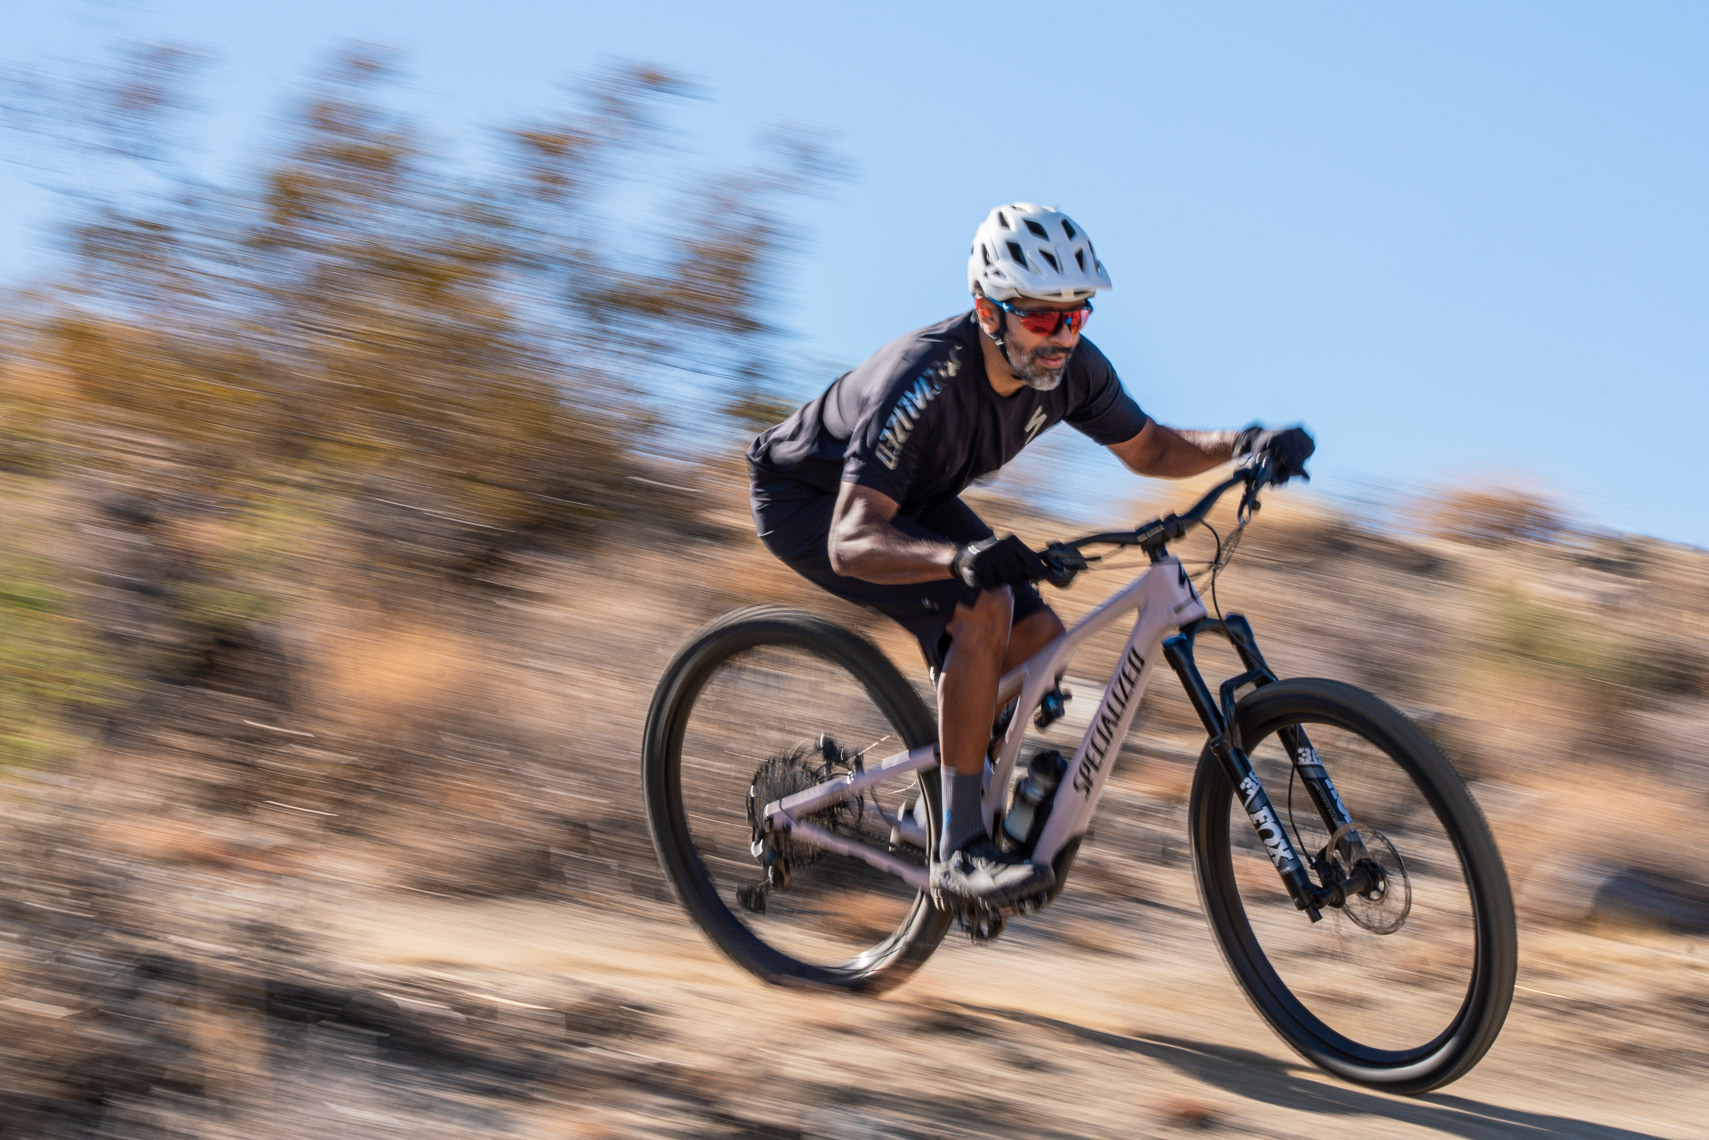 Specialized_S21_MTB_Clothing_Palm_Springs_VanWeelden-283